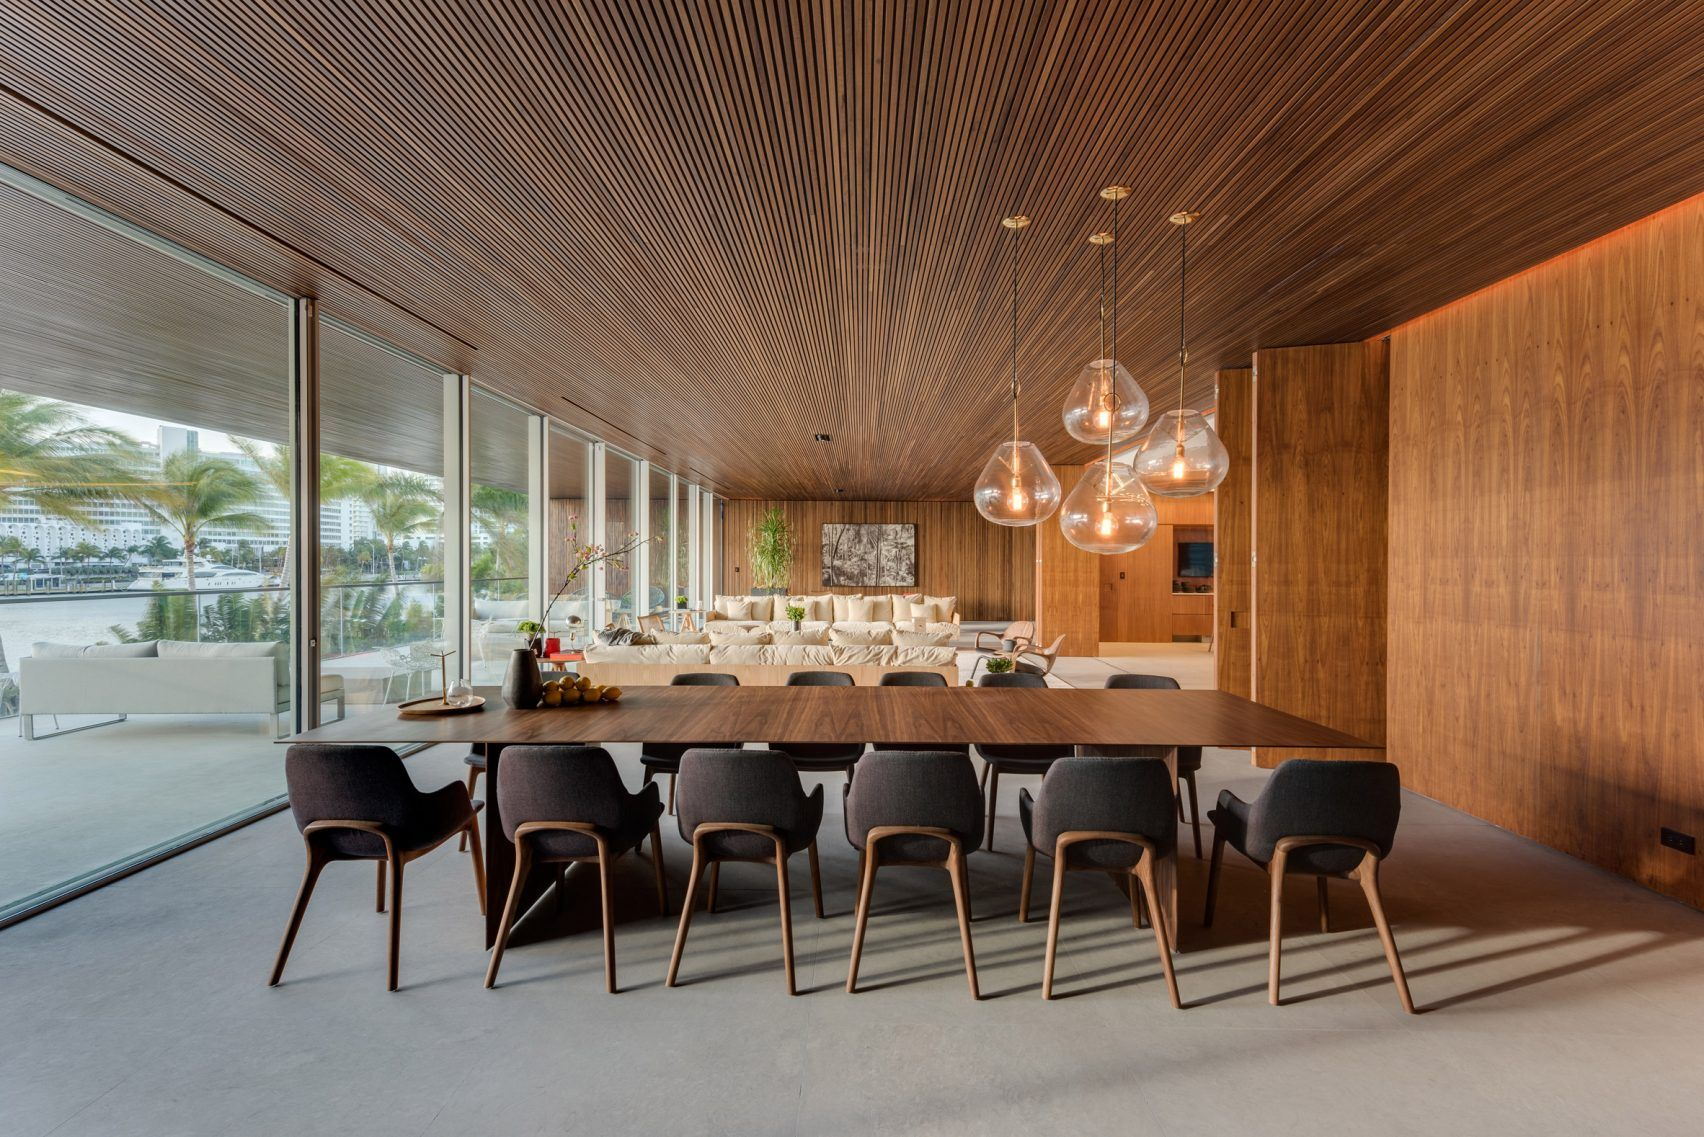 Private Dining Rooms Miami Studio Mk27 Completes Miami Beach House With Its Own Private